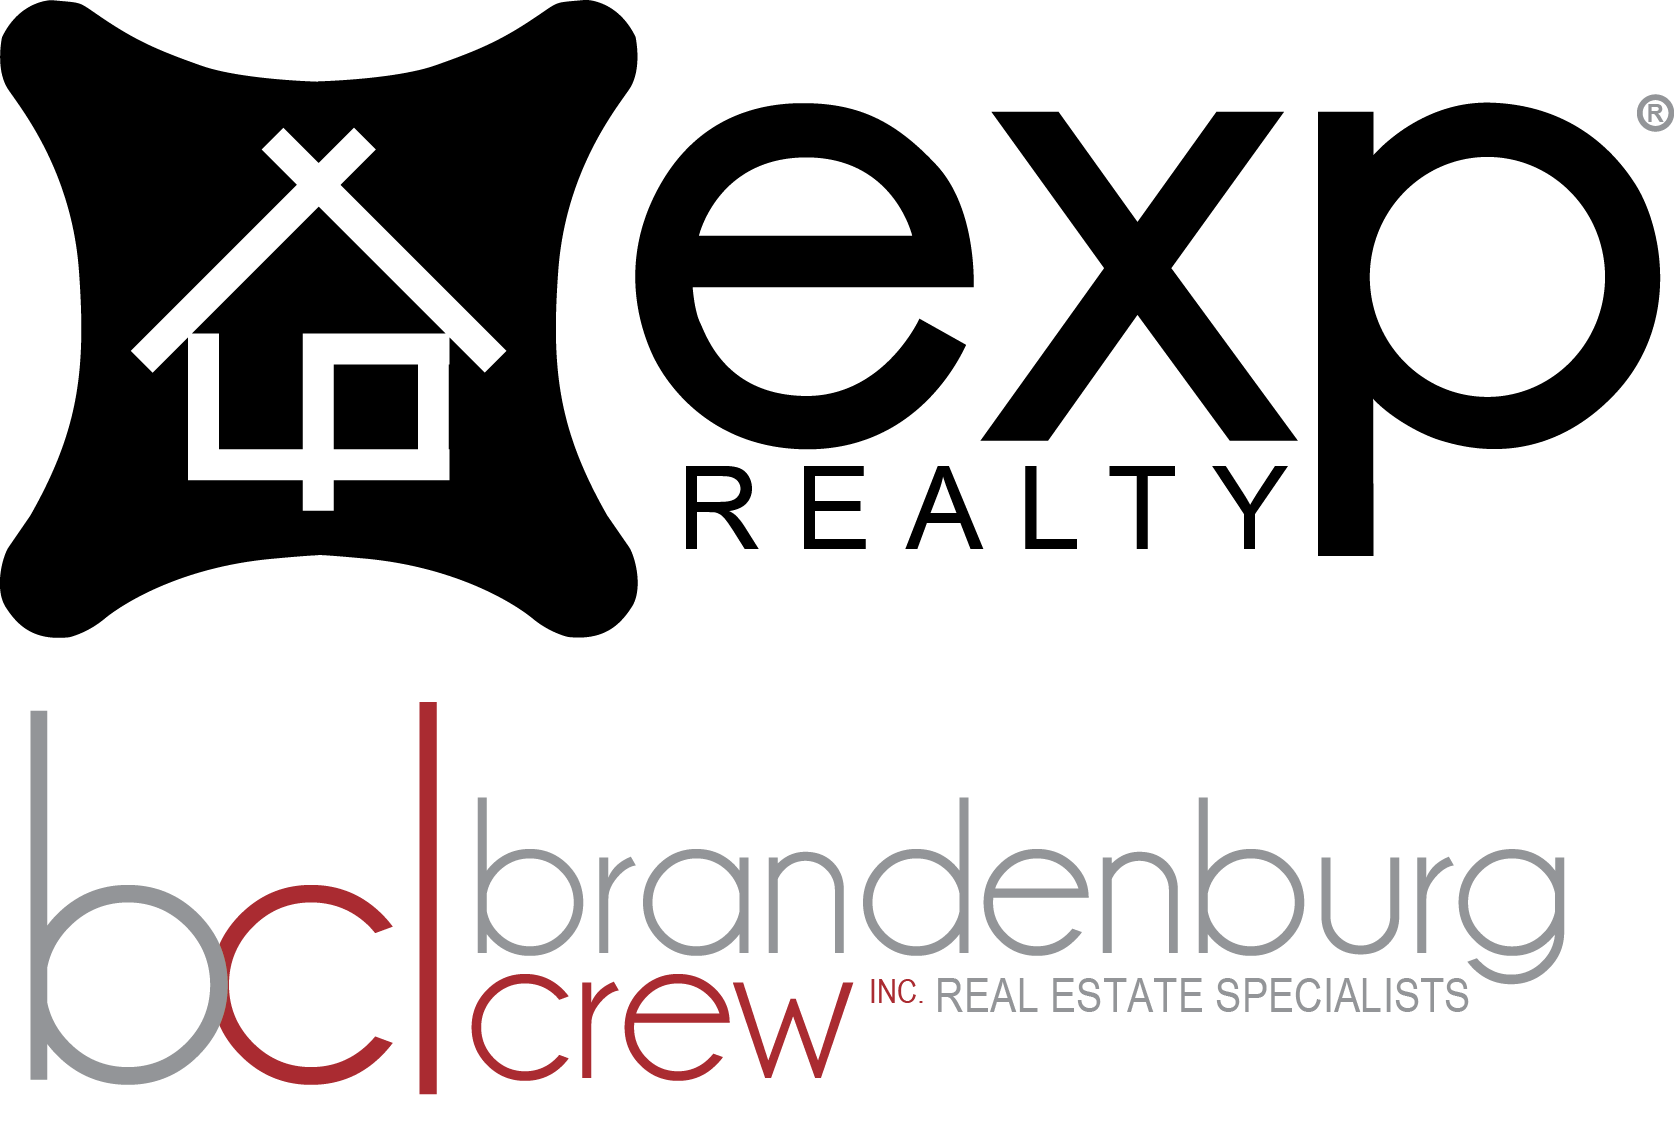 Brandenburg Crew Inc. at eXp Realty logo